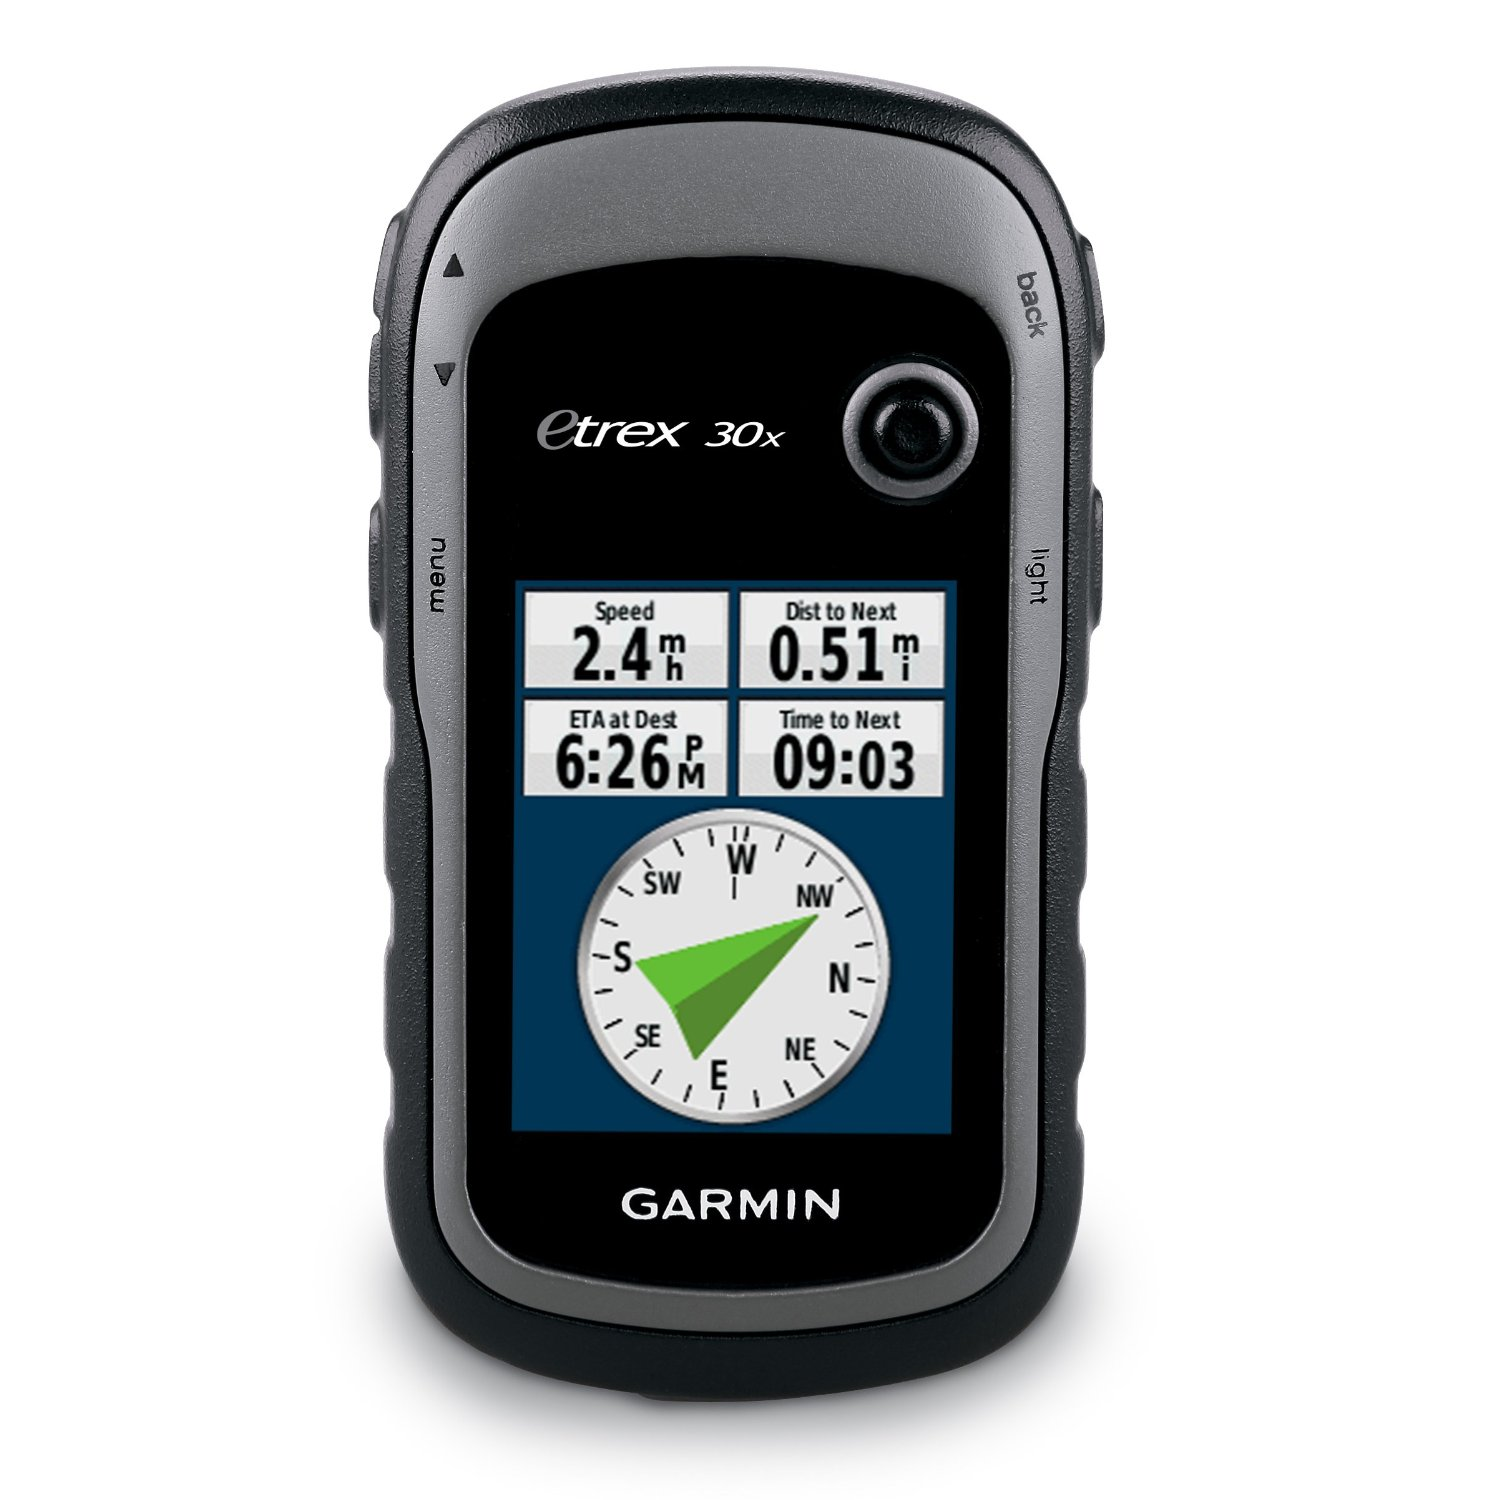 Garmin eTrex 30x Outdoor Handheld GPS Unit with TopoActive Western Europe Maps